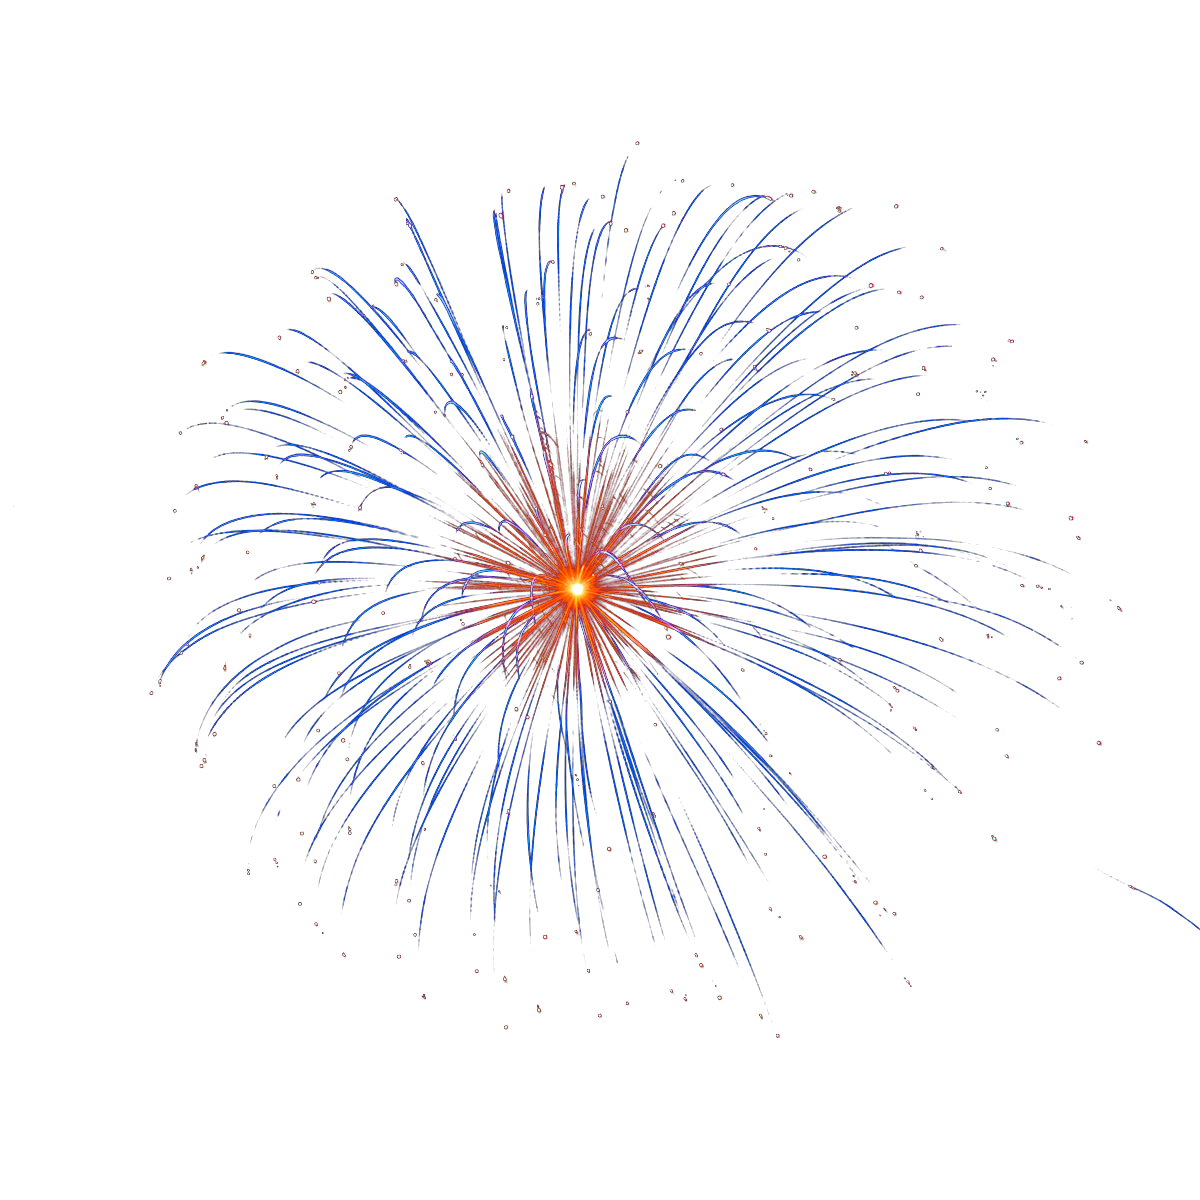 Firework Clip Art 16 Pictures to pin on Pinterest